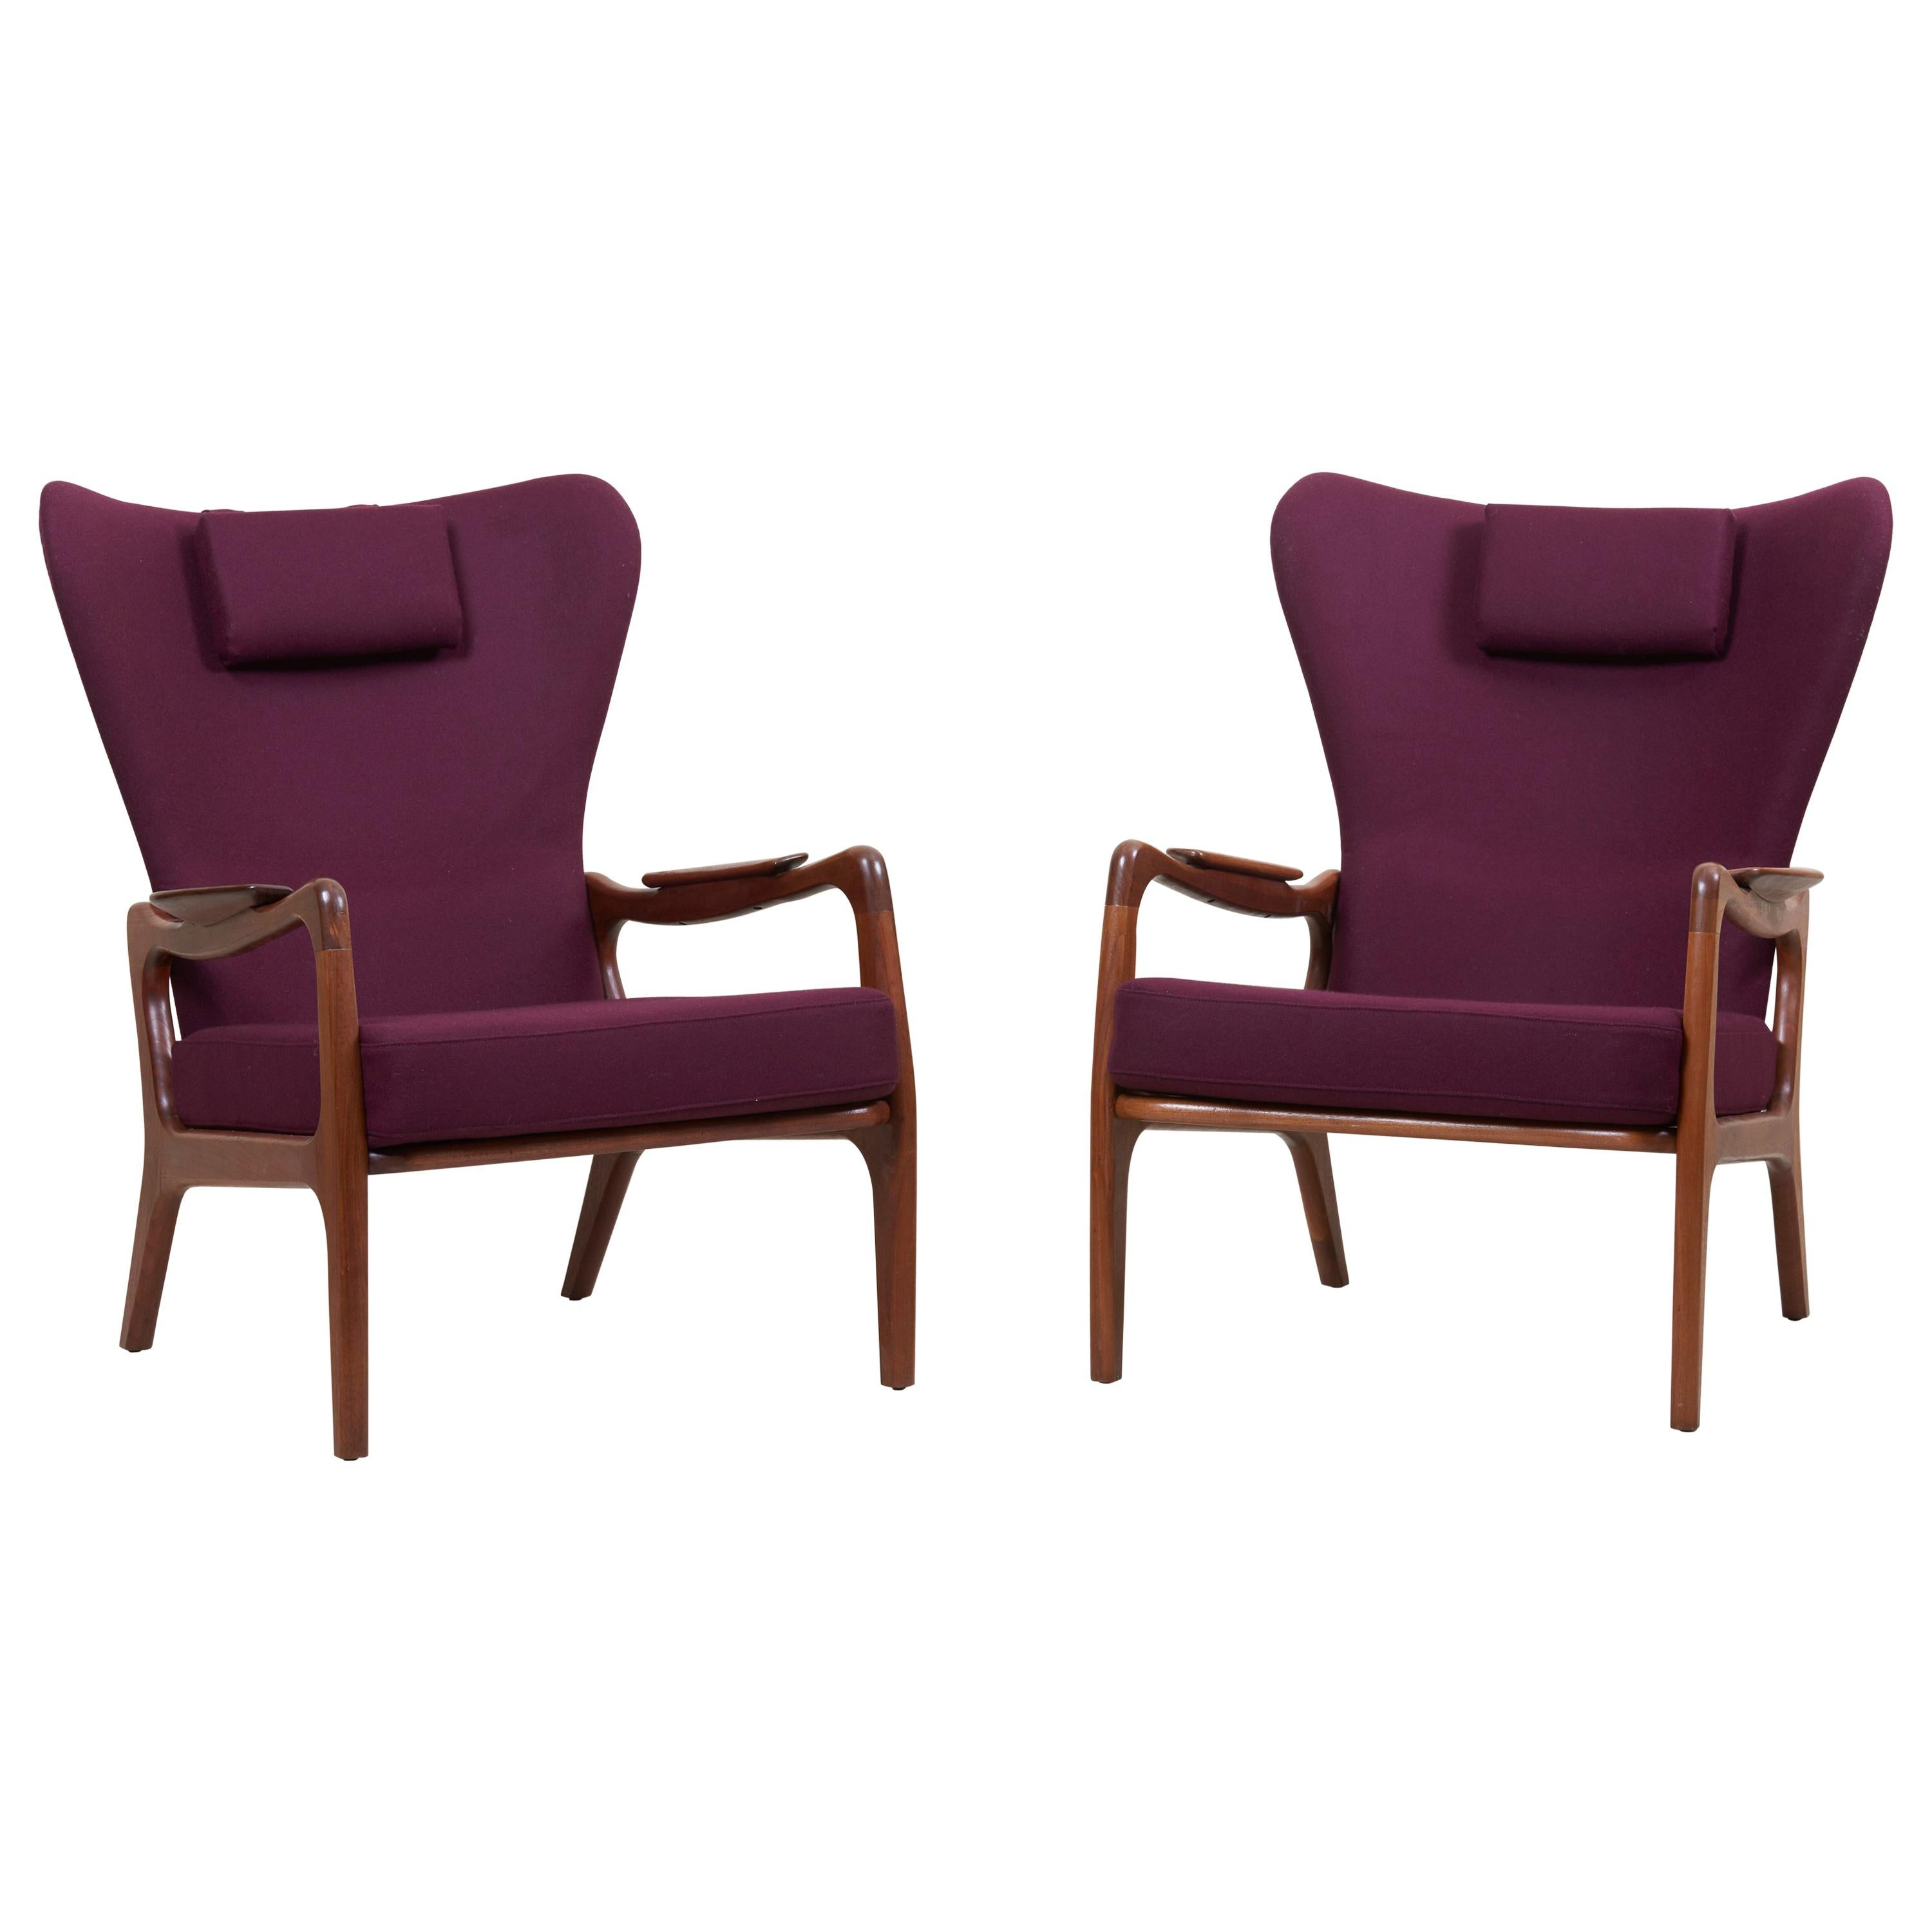 Newly Restored Pair of High Back Wing Lounge Chairs by Adrian Pearsall, 1950s